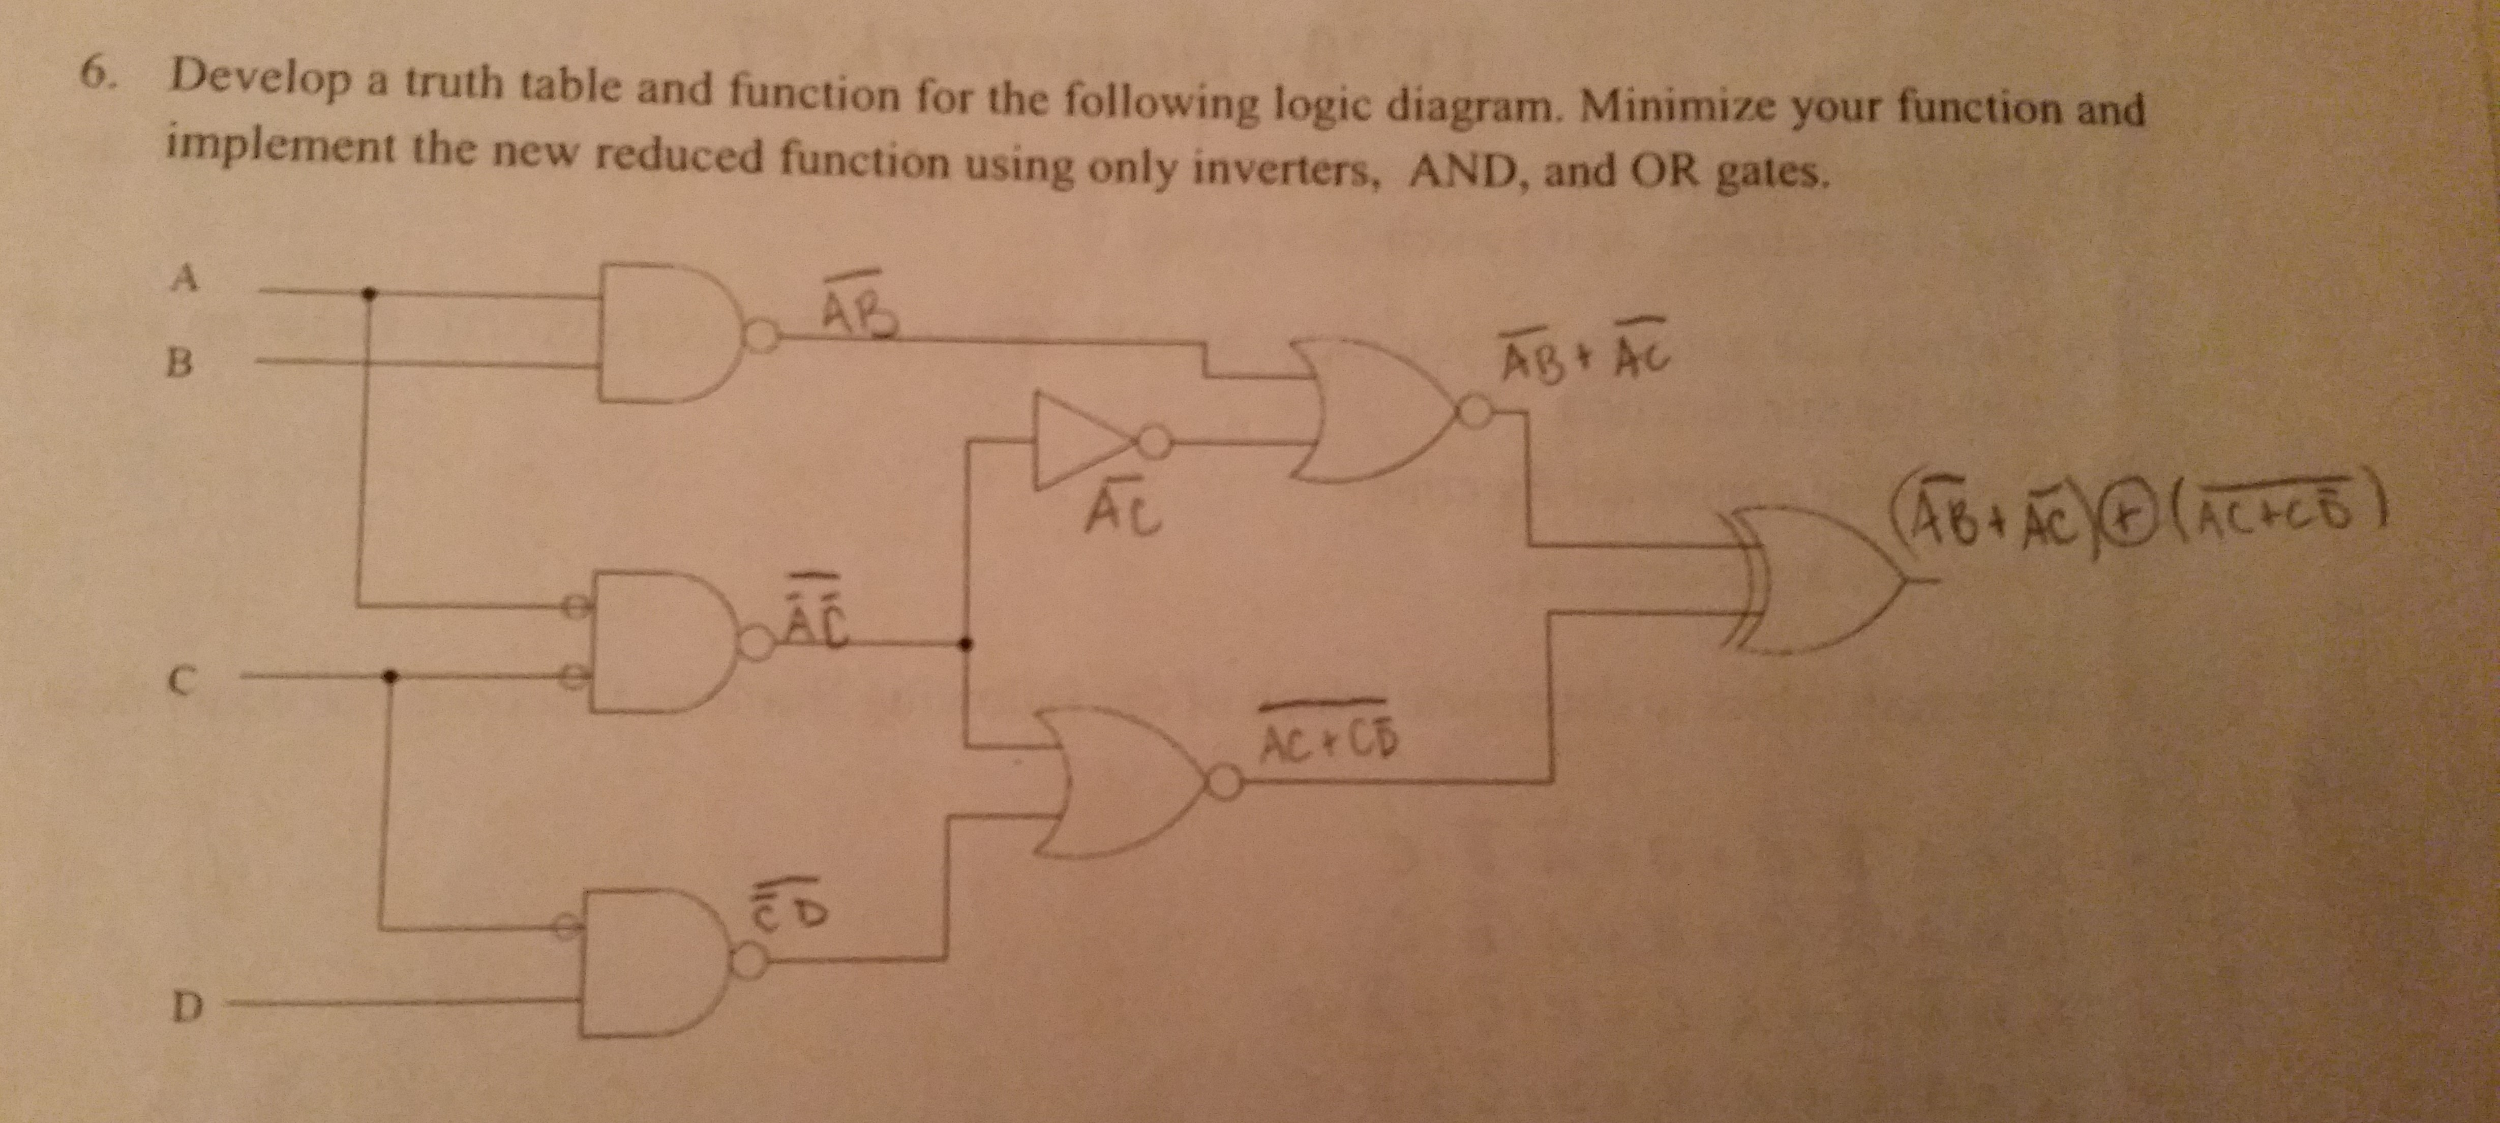 Solved Develop A Truth Table And Function For The Followi Logic Diagram From